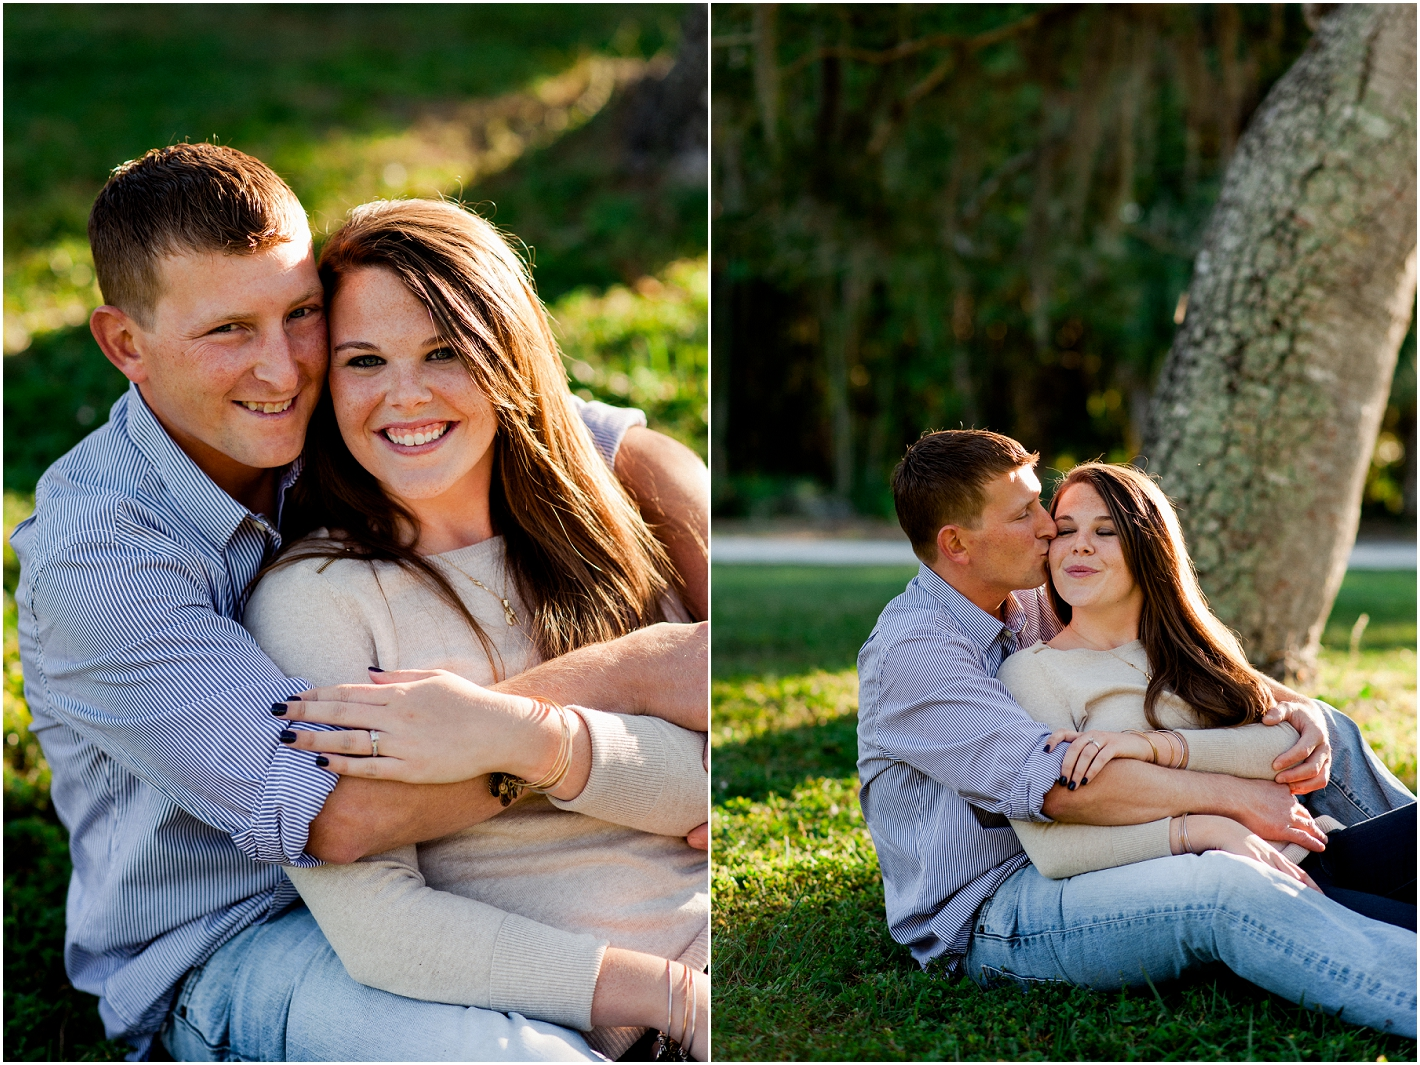 koreshan state park and historic site, engagement session, engagement photography, estero florida, bonita springs florida, florida wedding photographer